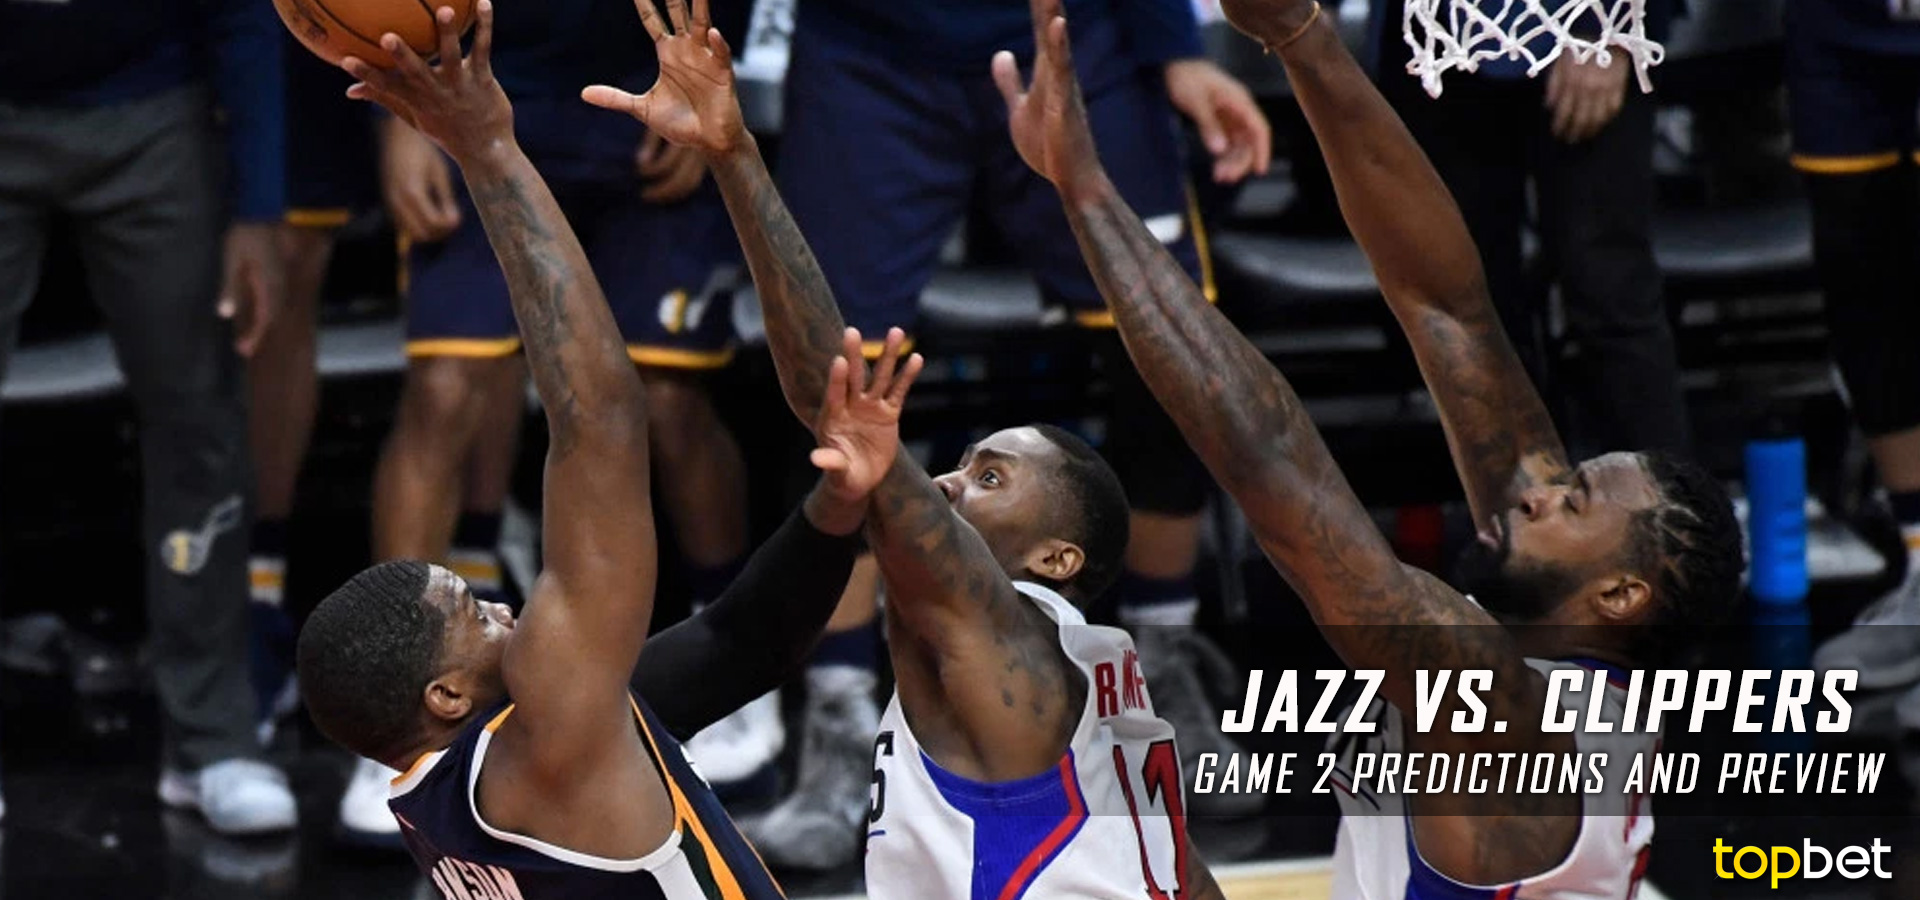 Jazz Vs Clippers Series Game 2 Predictions Picks Amp Preview